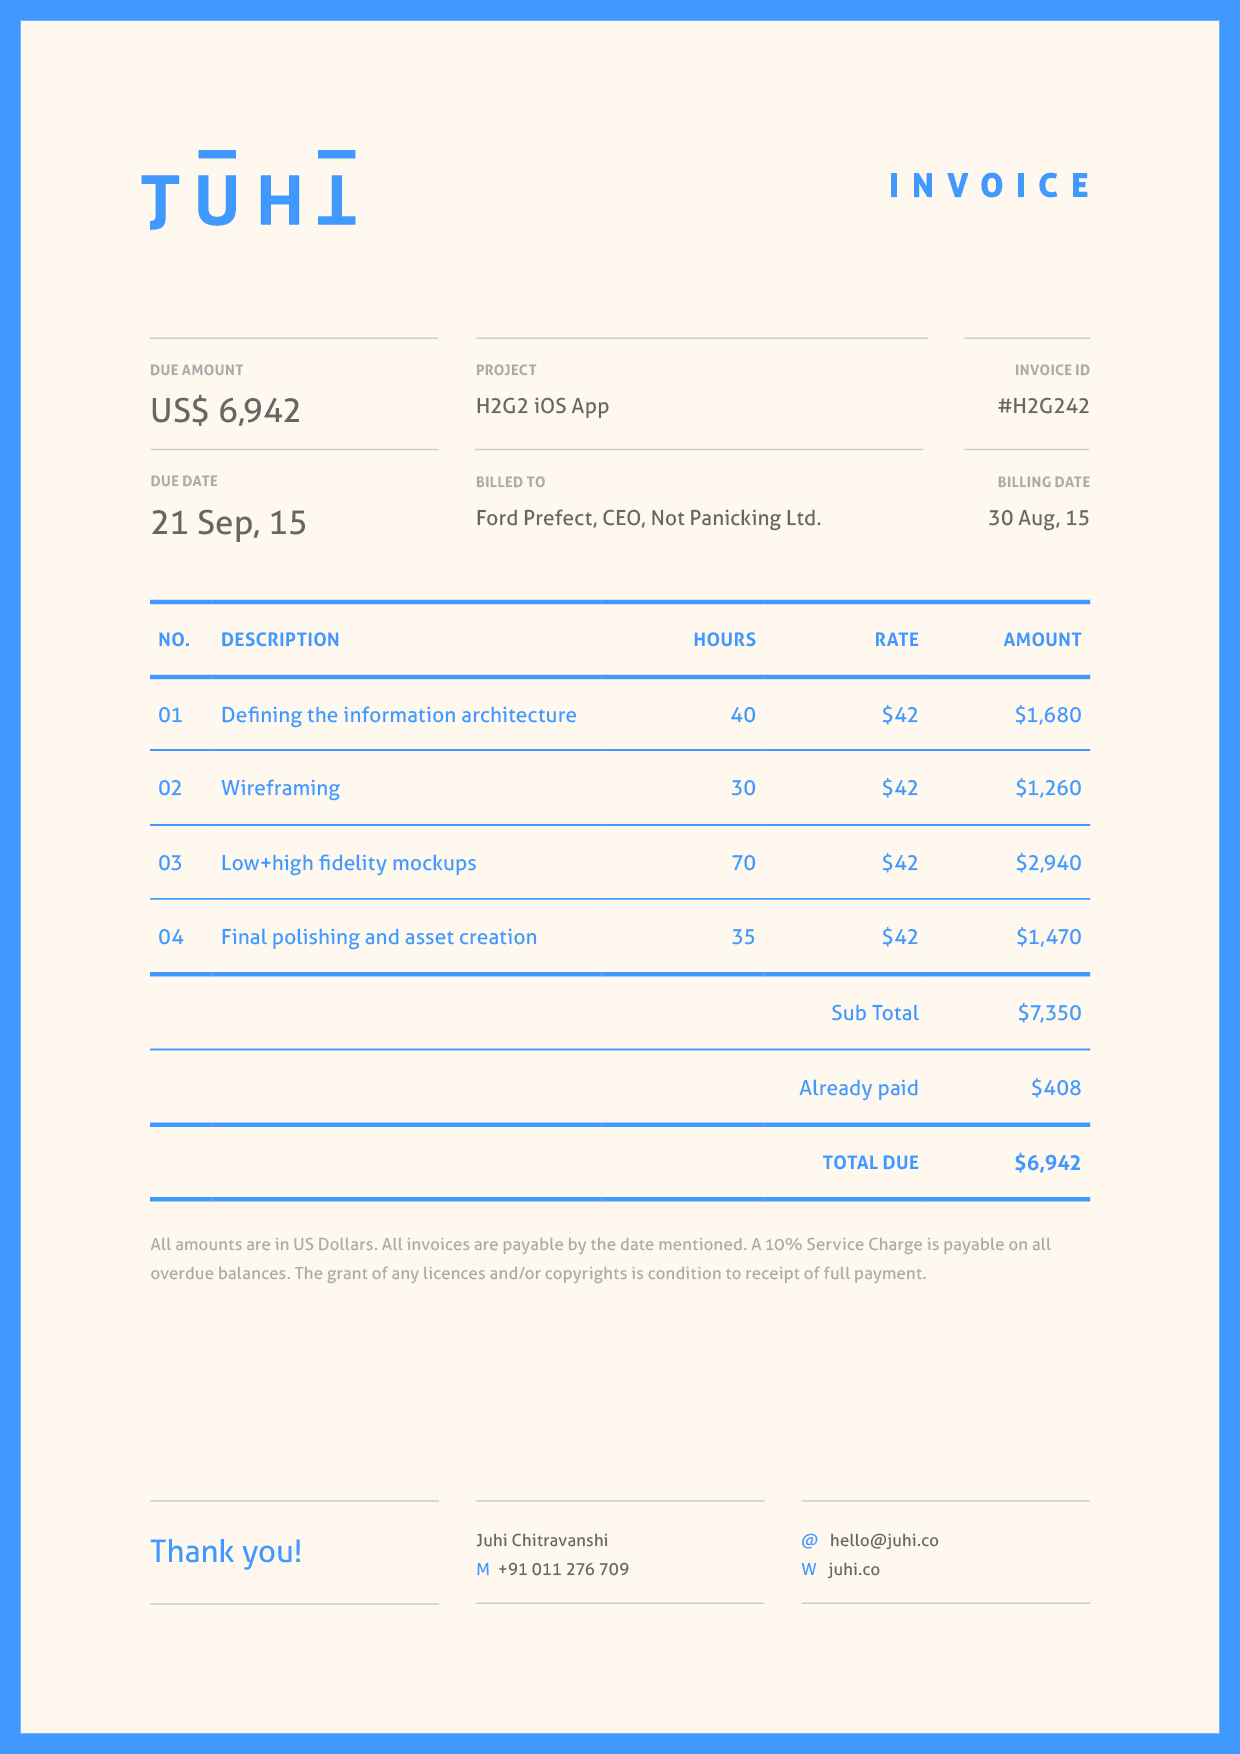 Usdgus  Stunning Dont Hold Back On Your Invoice  Inspiring Designs  With Handsome Invoice By Juhi Chitravanshi Follow With Adorable Ms Word Custom Invoice Template Also How To Process Invoices In Addition Invoice Template Printable And Photography Invoice Template Word As Well As Invoice Now Additionally Fill In Invoice From Inspirationfeedcom With Usdgus  Handsome Dont Hold Back On Your Invoice  Inspiring Designs  With Adorable Invoice By Juhi Chitravanshi Follow And Stunning Ms Word Custom Invoice Template Also How To Process Invoices In Addition Invoice Template Printable From Inspirationfeedcom